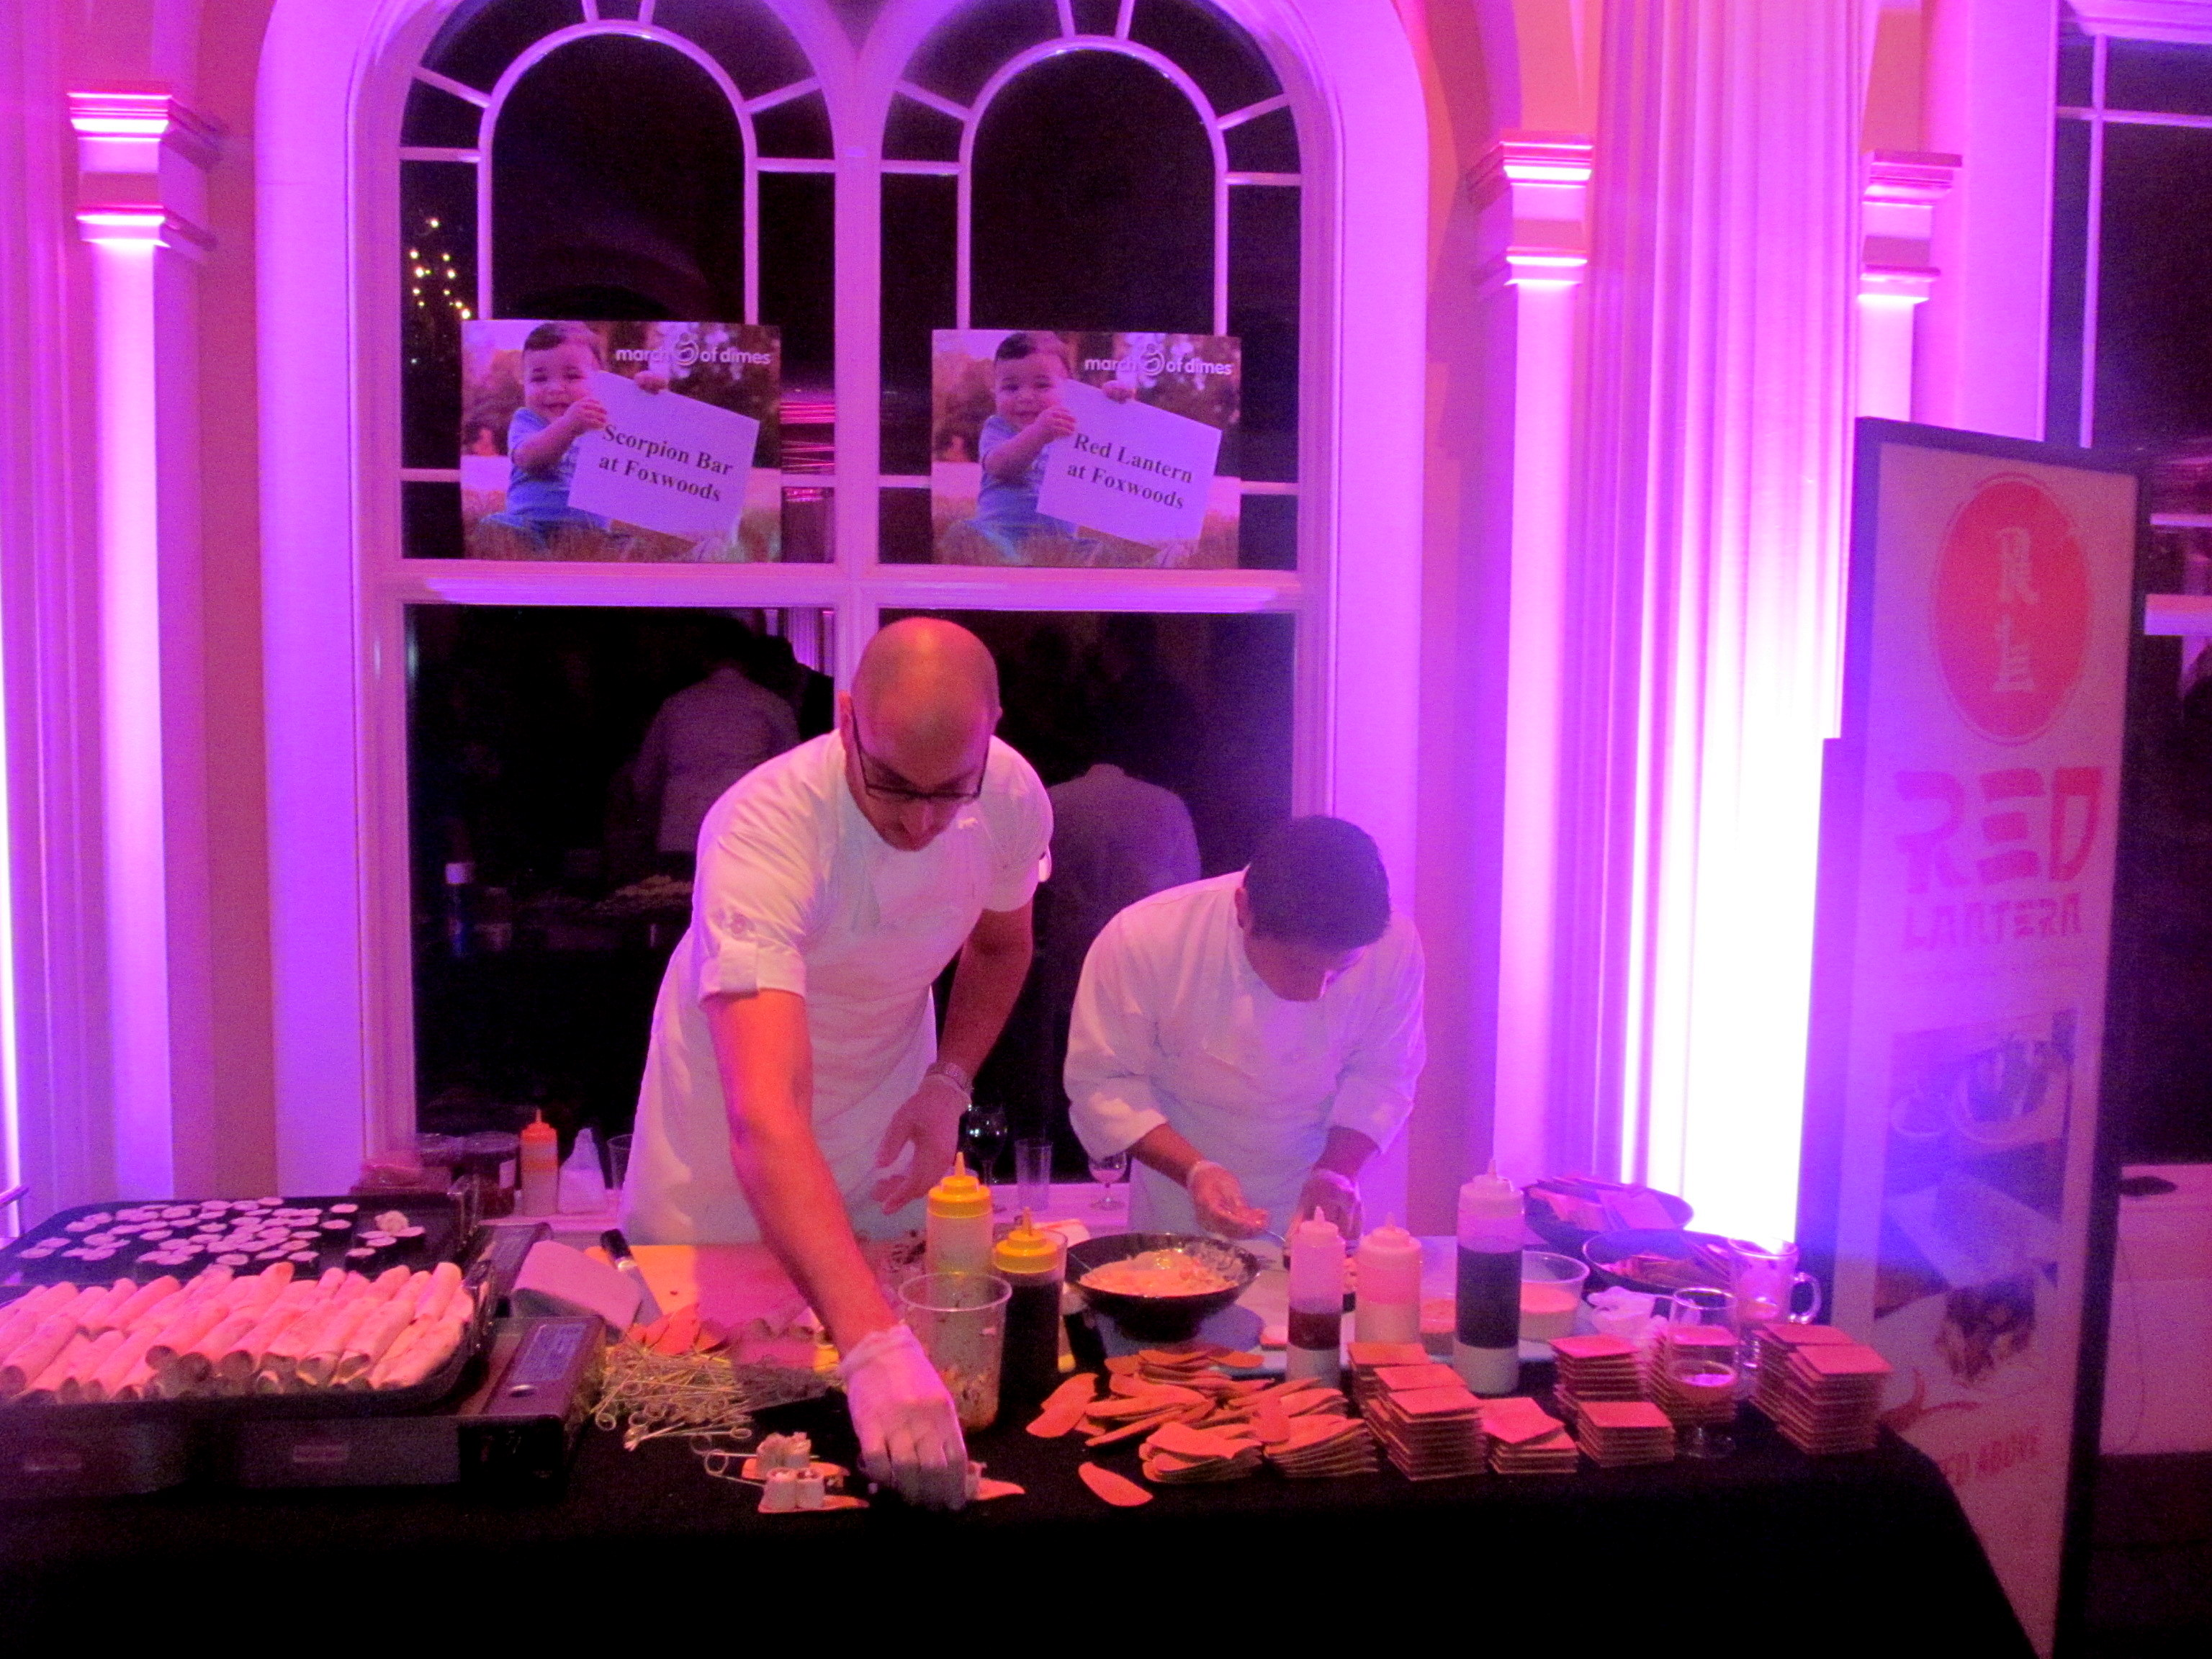 Red Lantern and Shrine chefs at work.